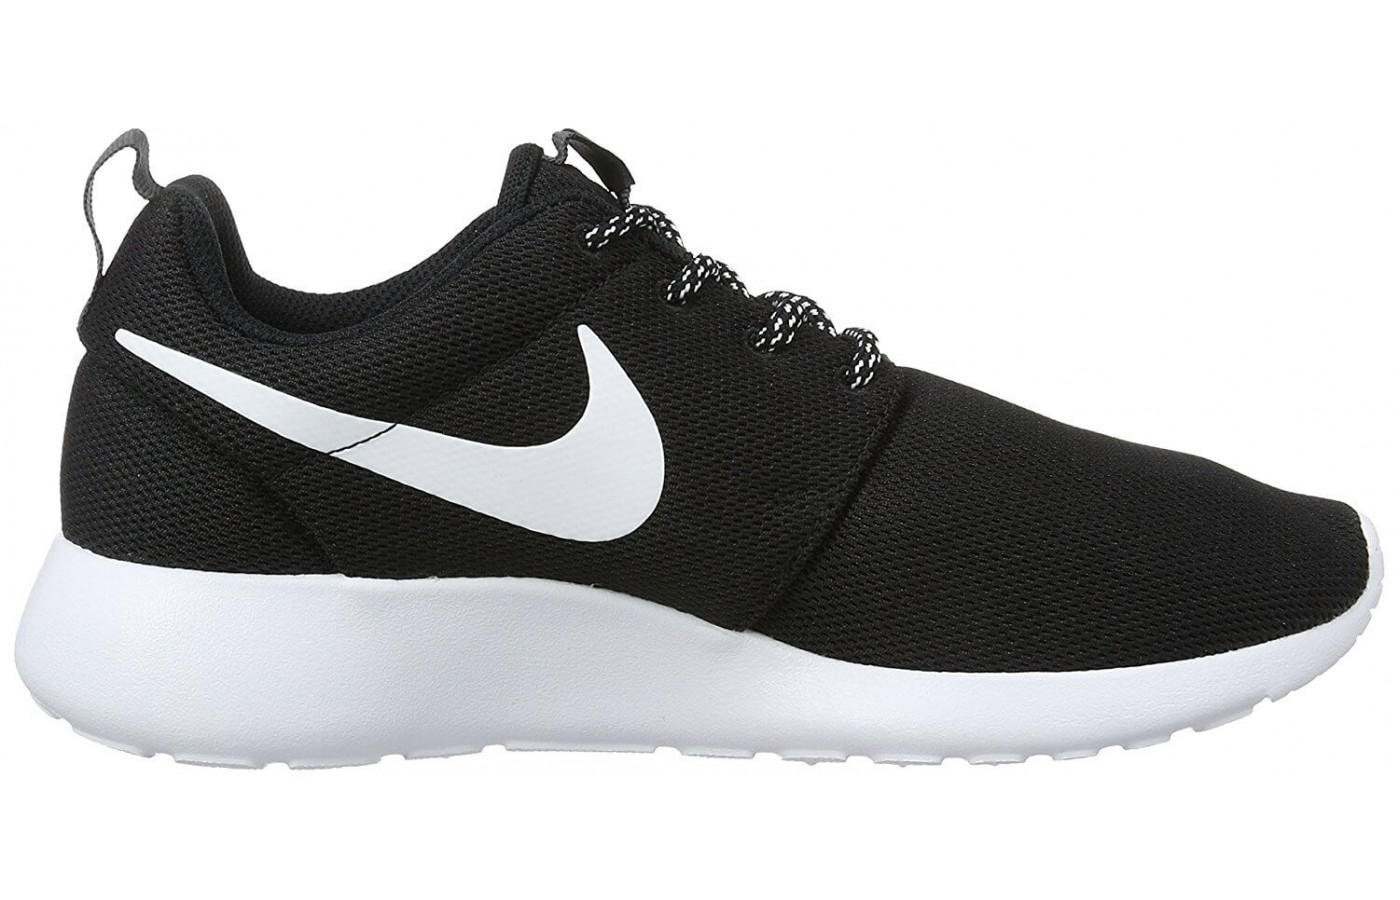 buy popular 4c5a2 f5753 Nike Roshe One Reviewed - To Buy or Not in May 2019